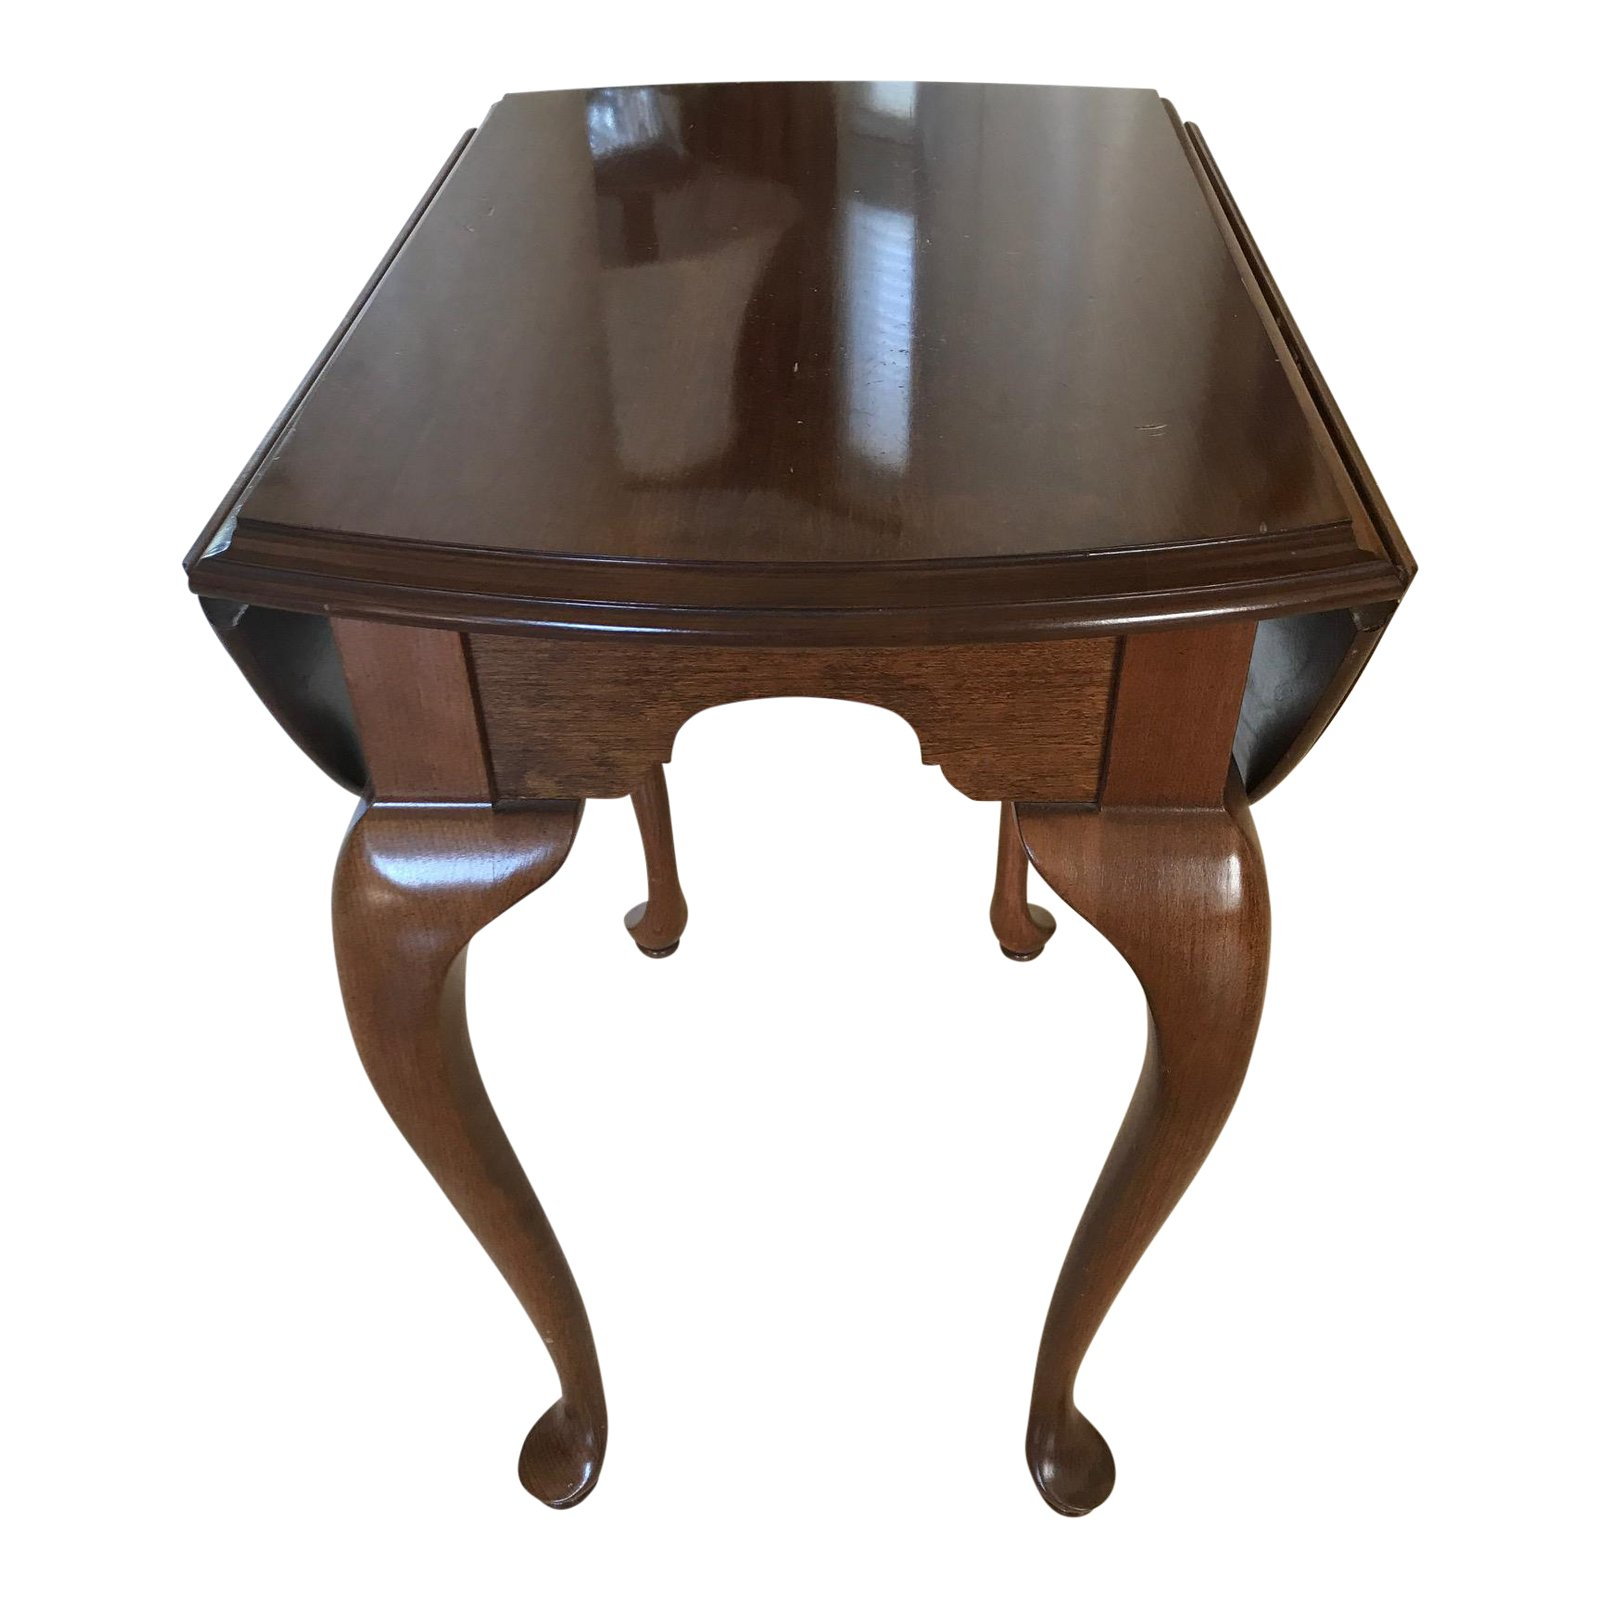 ethan allen drop leaf solid cherry wood accent table chairish small corner pier one frames target patio coffee pool covers bunnings large round wall clock ikea slim storage mini